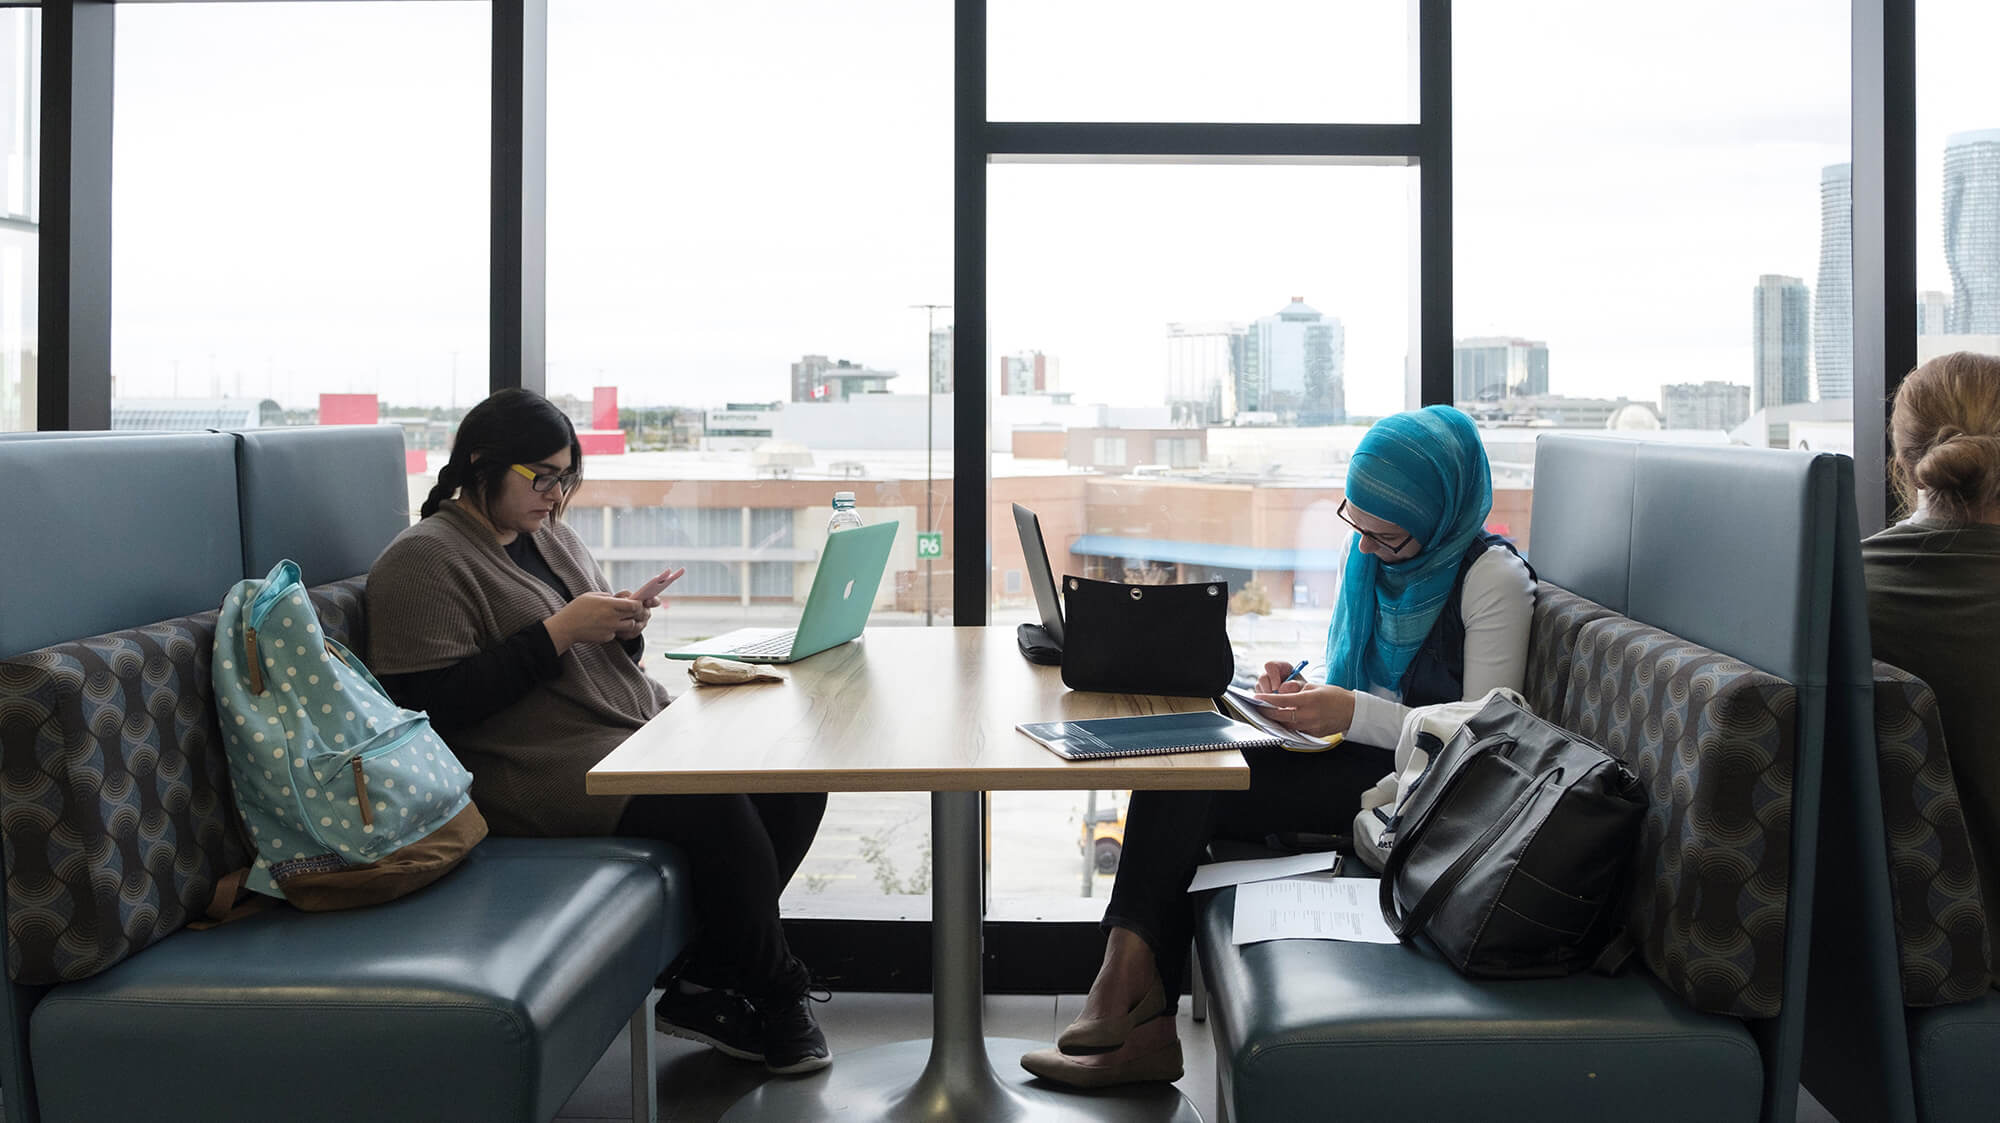 Two students sitting across from each other and studying in a booth with bright tall windows